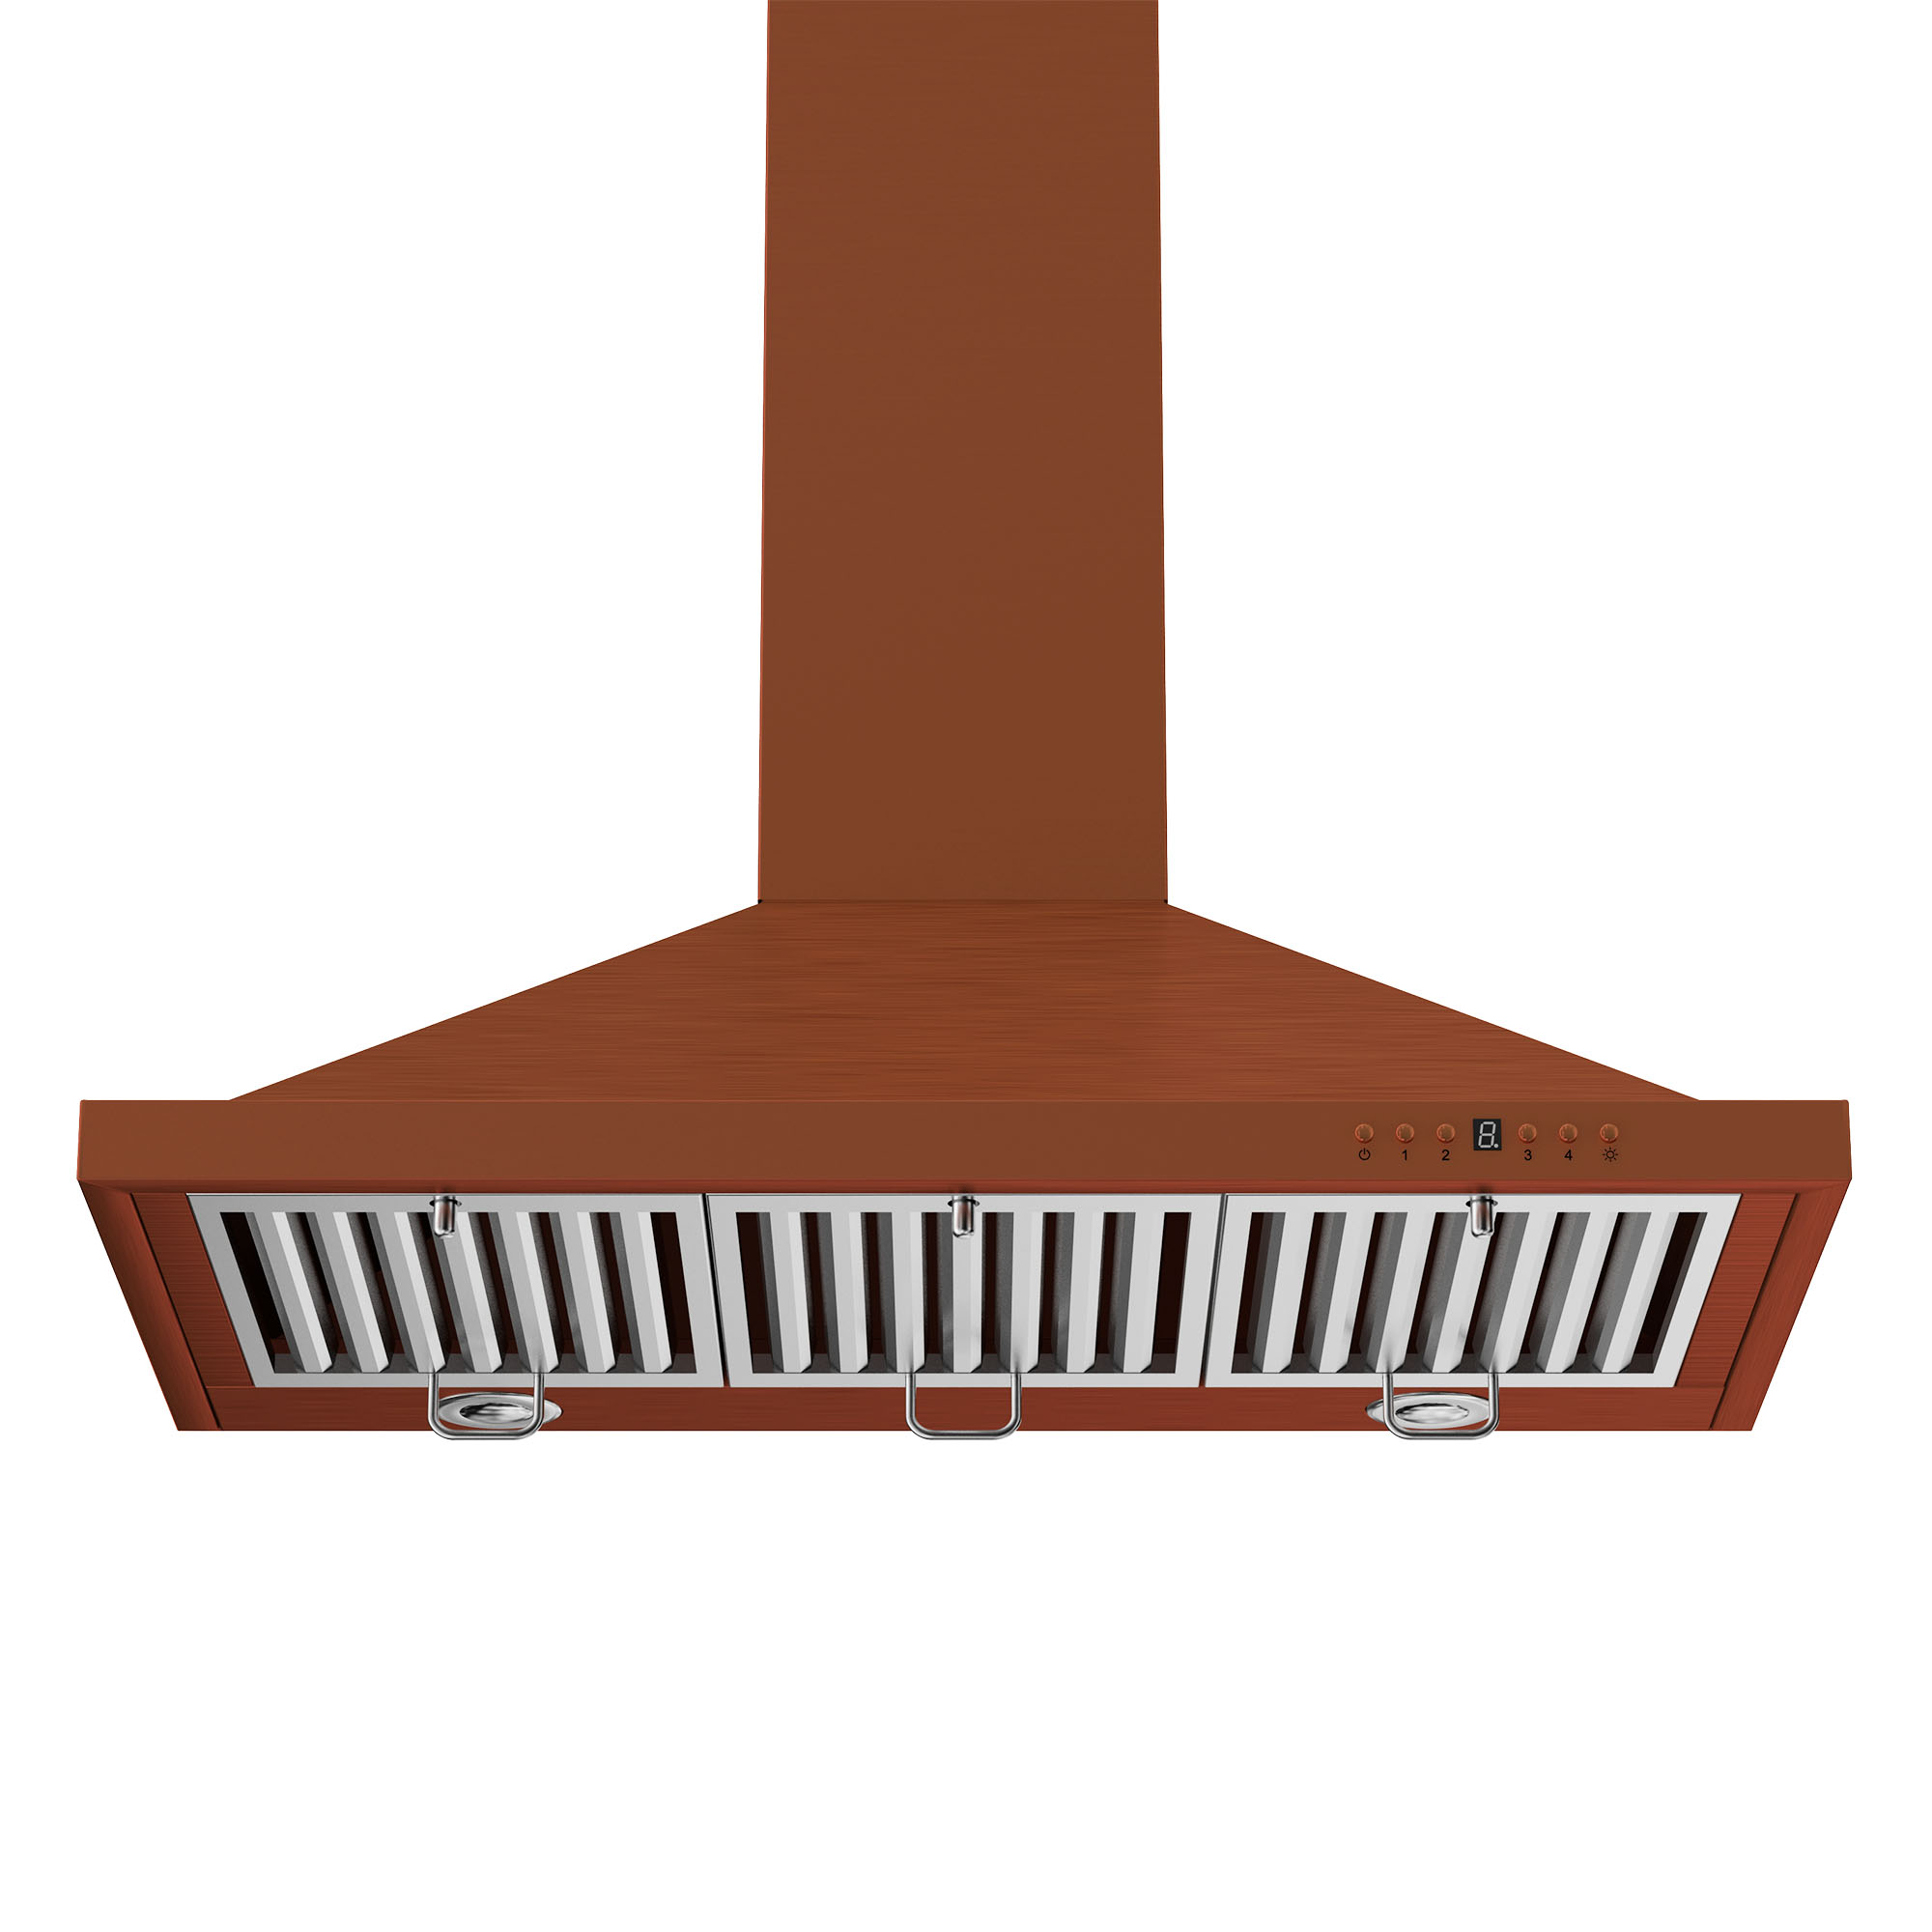 zline-copper-wall-mounted-range-hood-8KBC-underneath.jpg